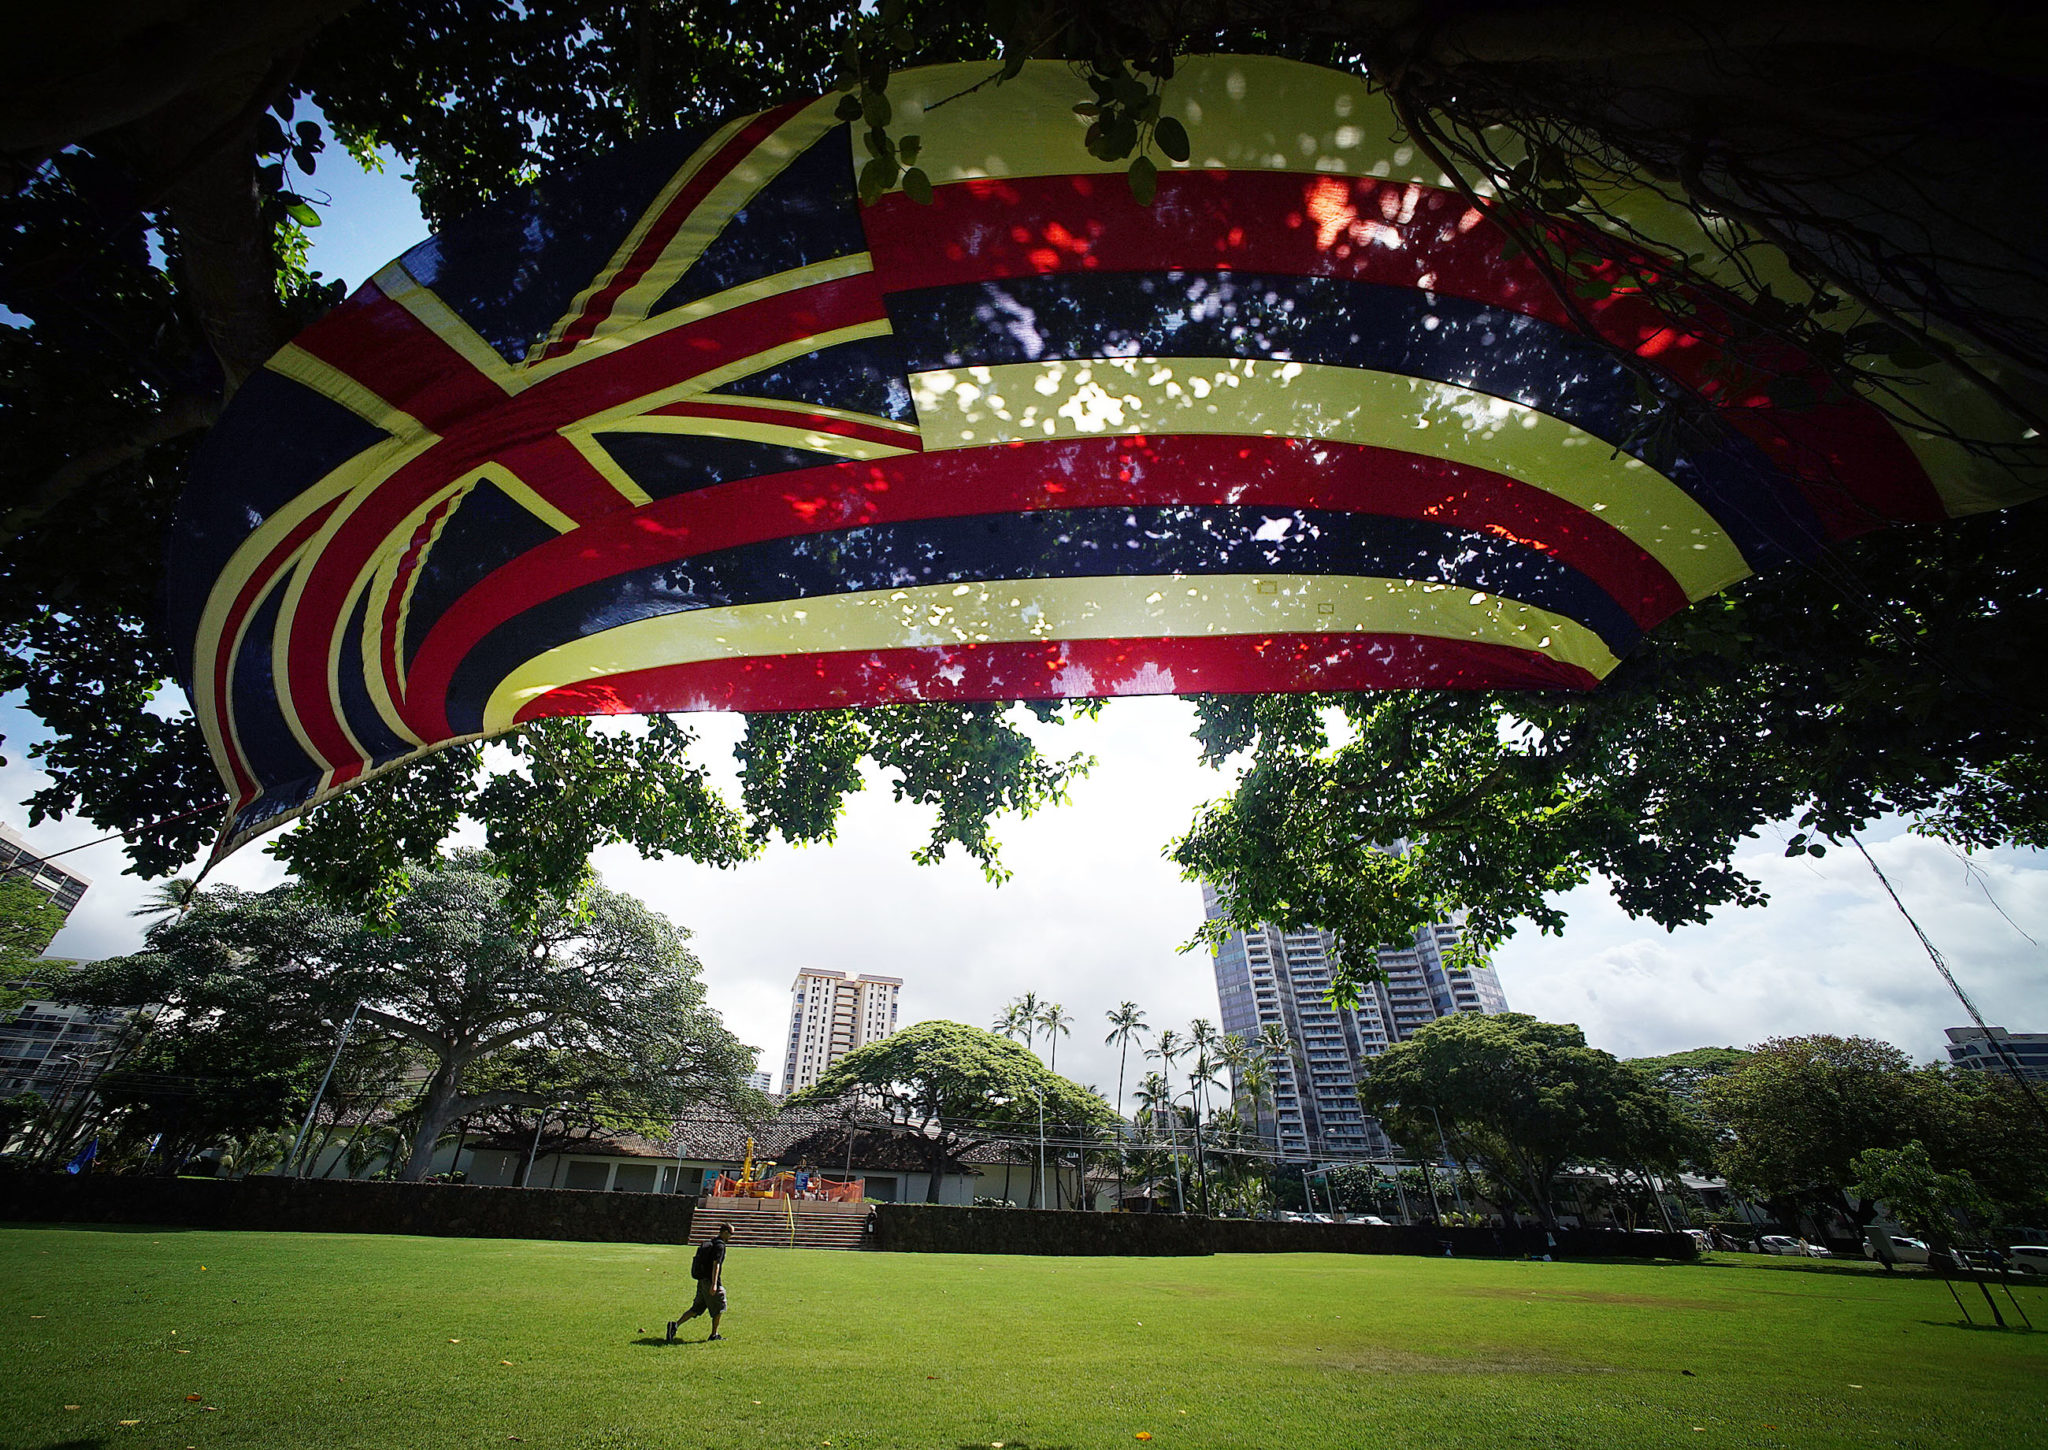 <p>A huge Hawaiian flag swirls on the mauka side of Thomas Square during the sculpture dedication exactly 175 years after five months of British control ended with control of the kingdom returned to King Kamehameha III.</p>